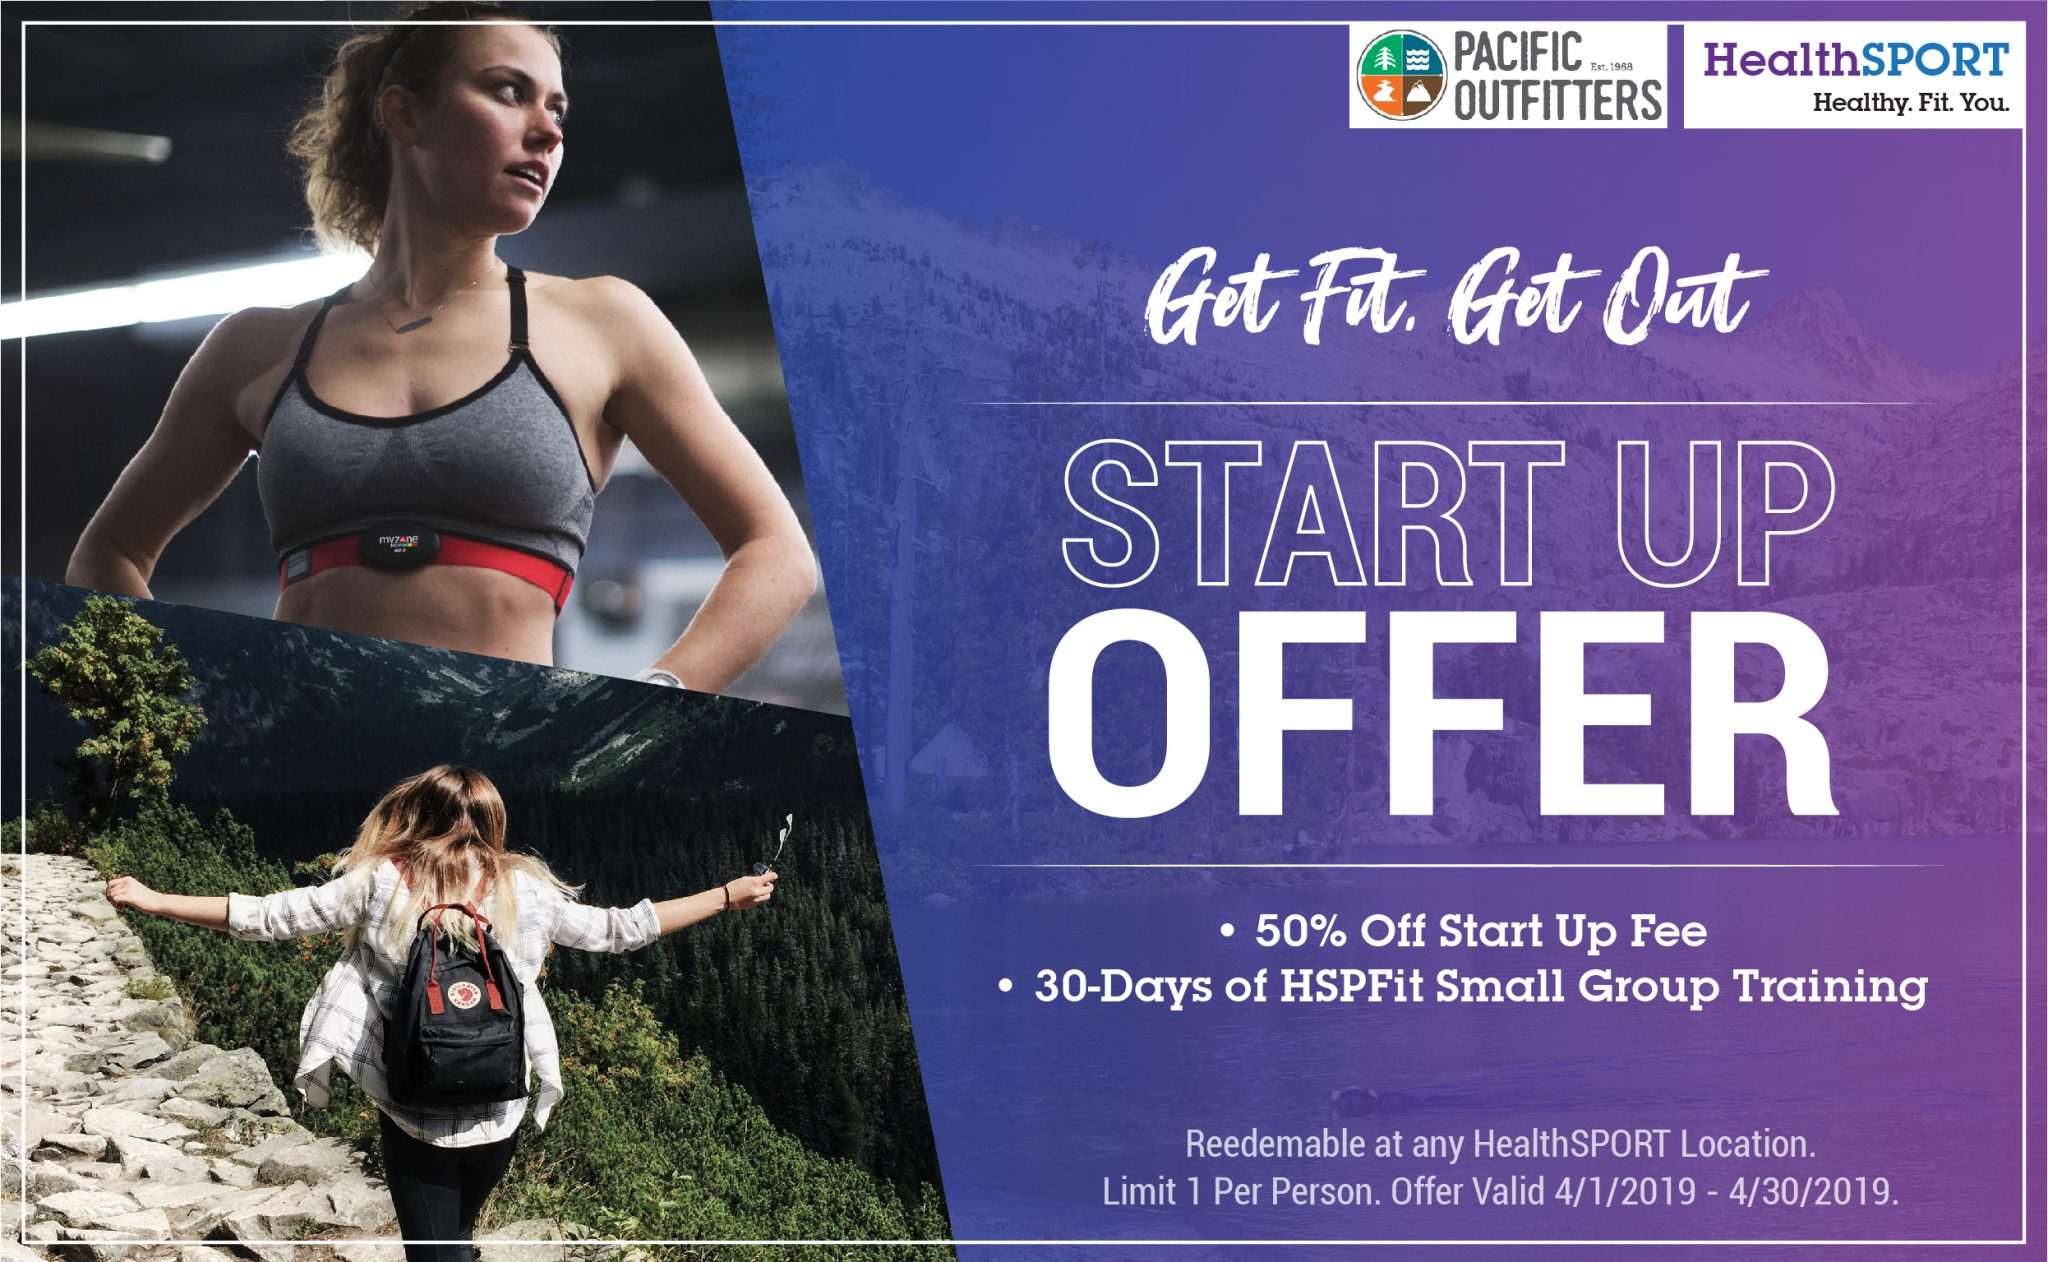 Pacific Outfitters & HealthSPORT #GetFitGetOut